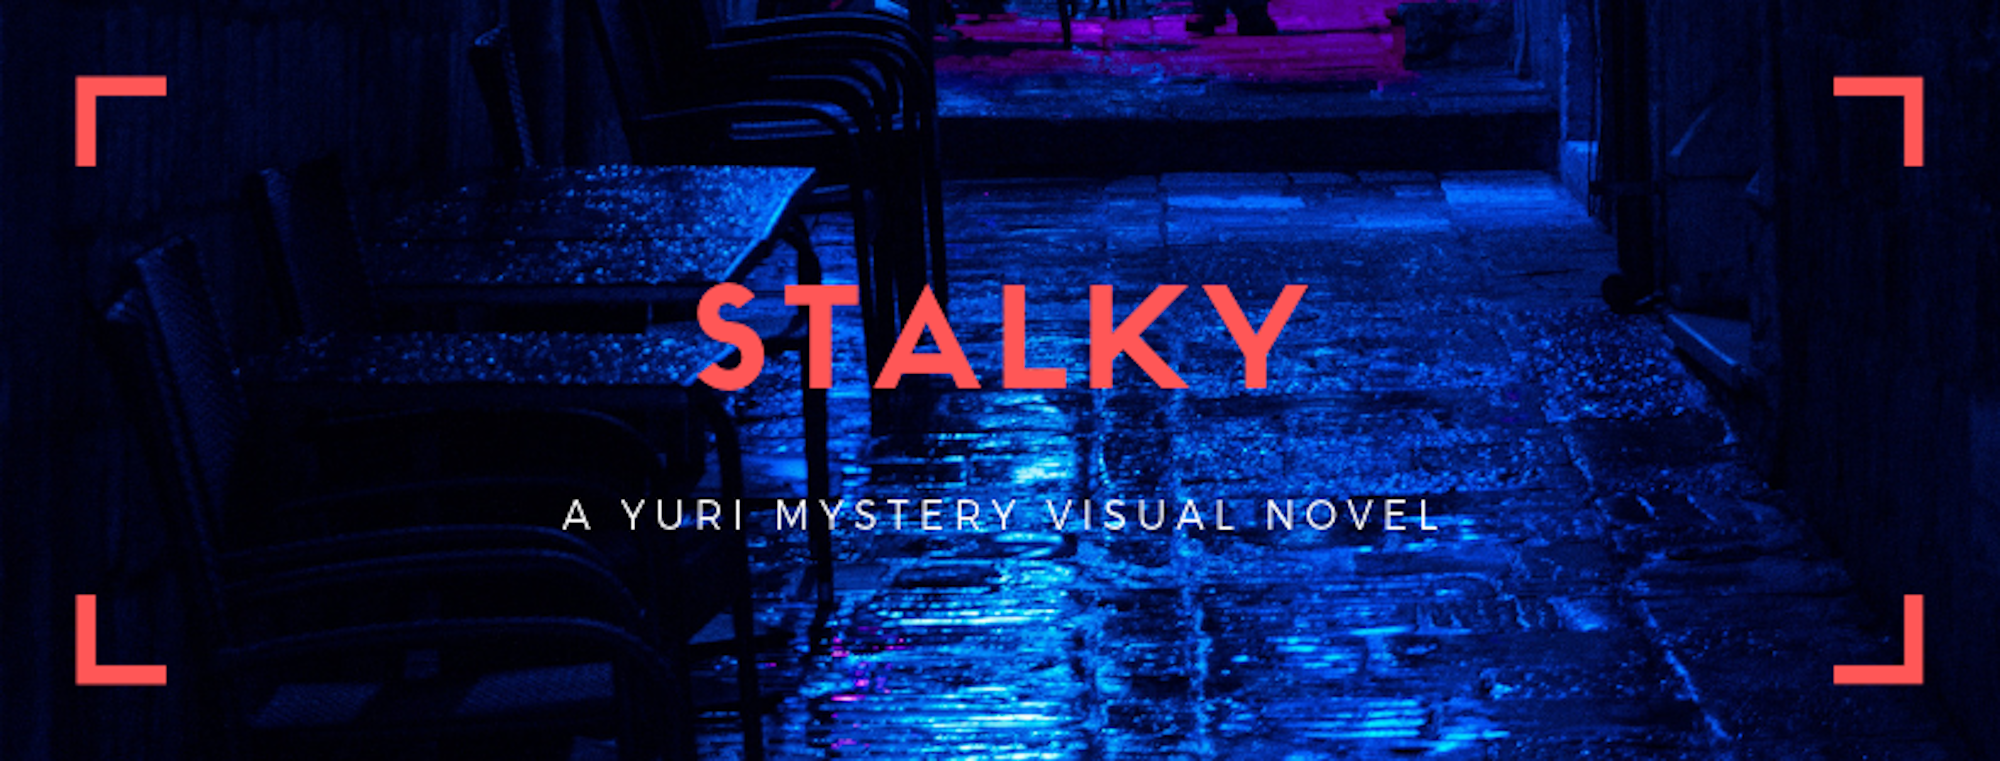 Stalky